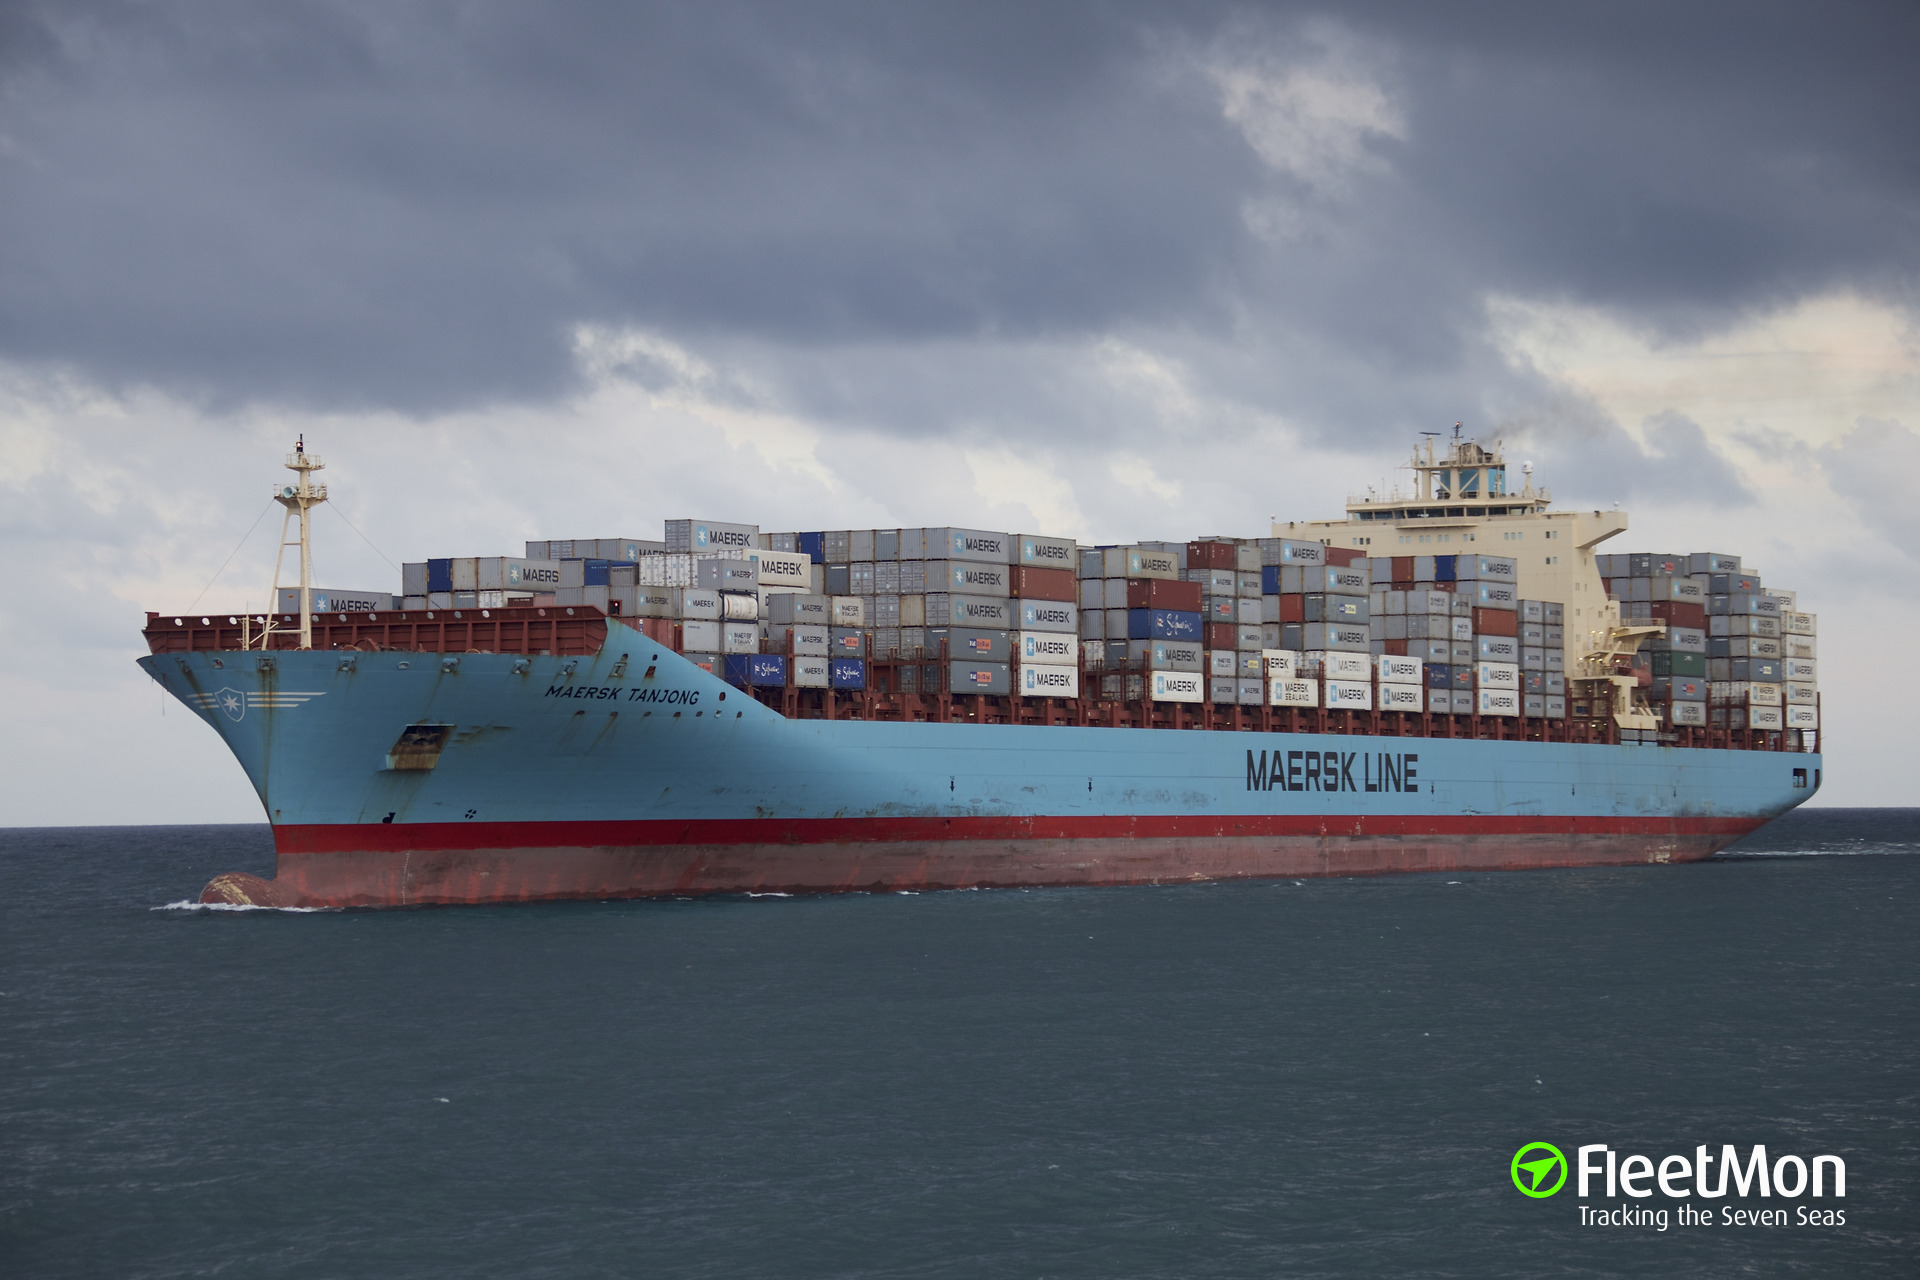 ​Collision between COLOMBO EXPRESS and MAERSK TANJONG